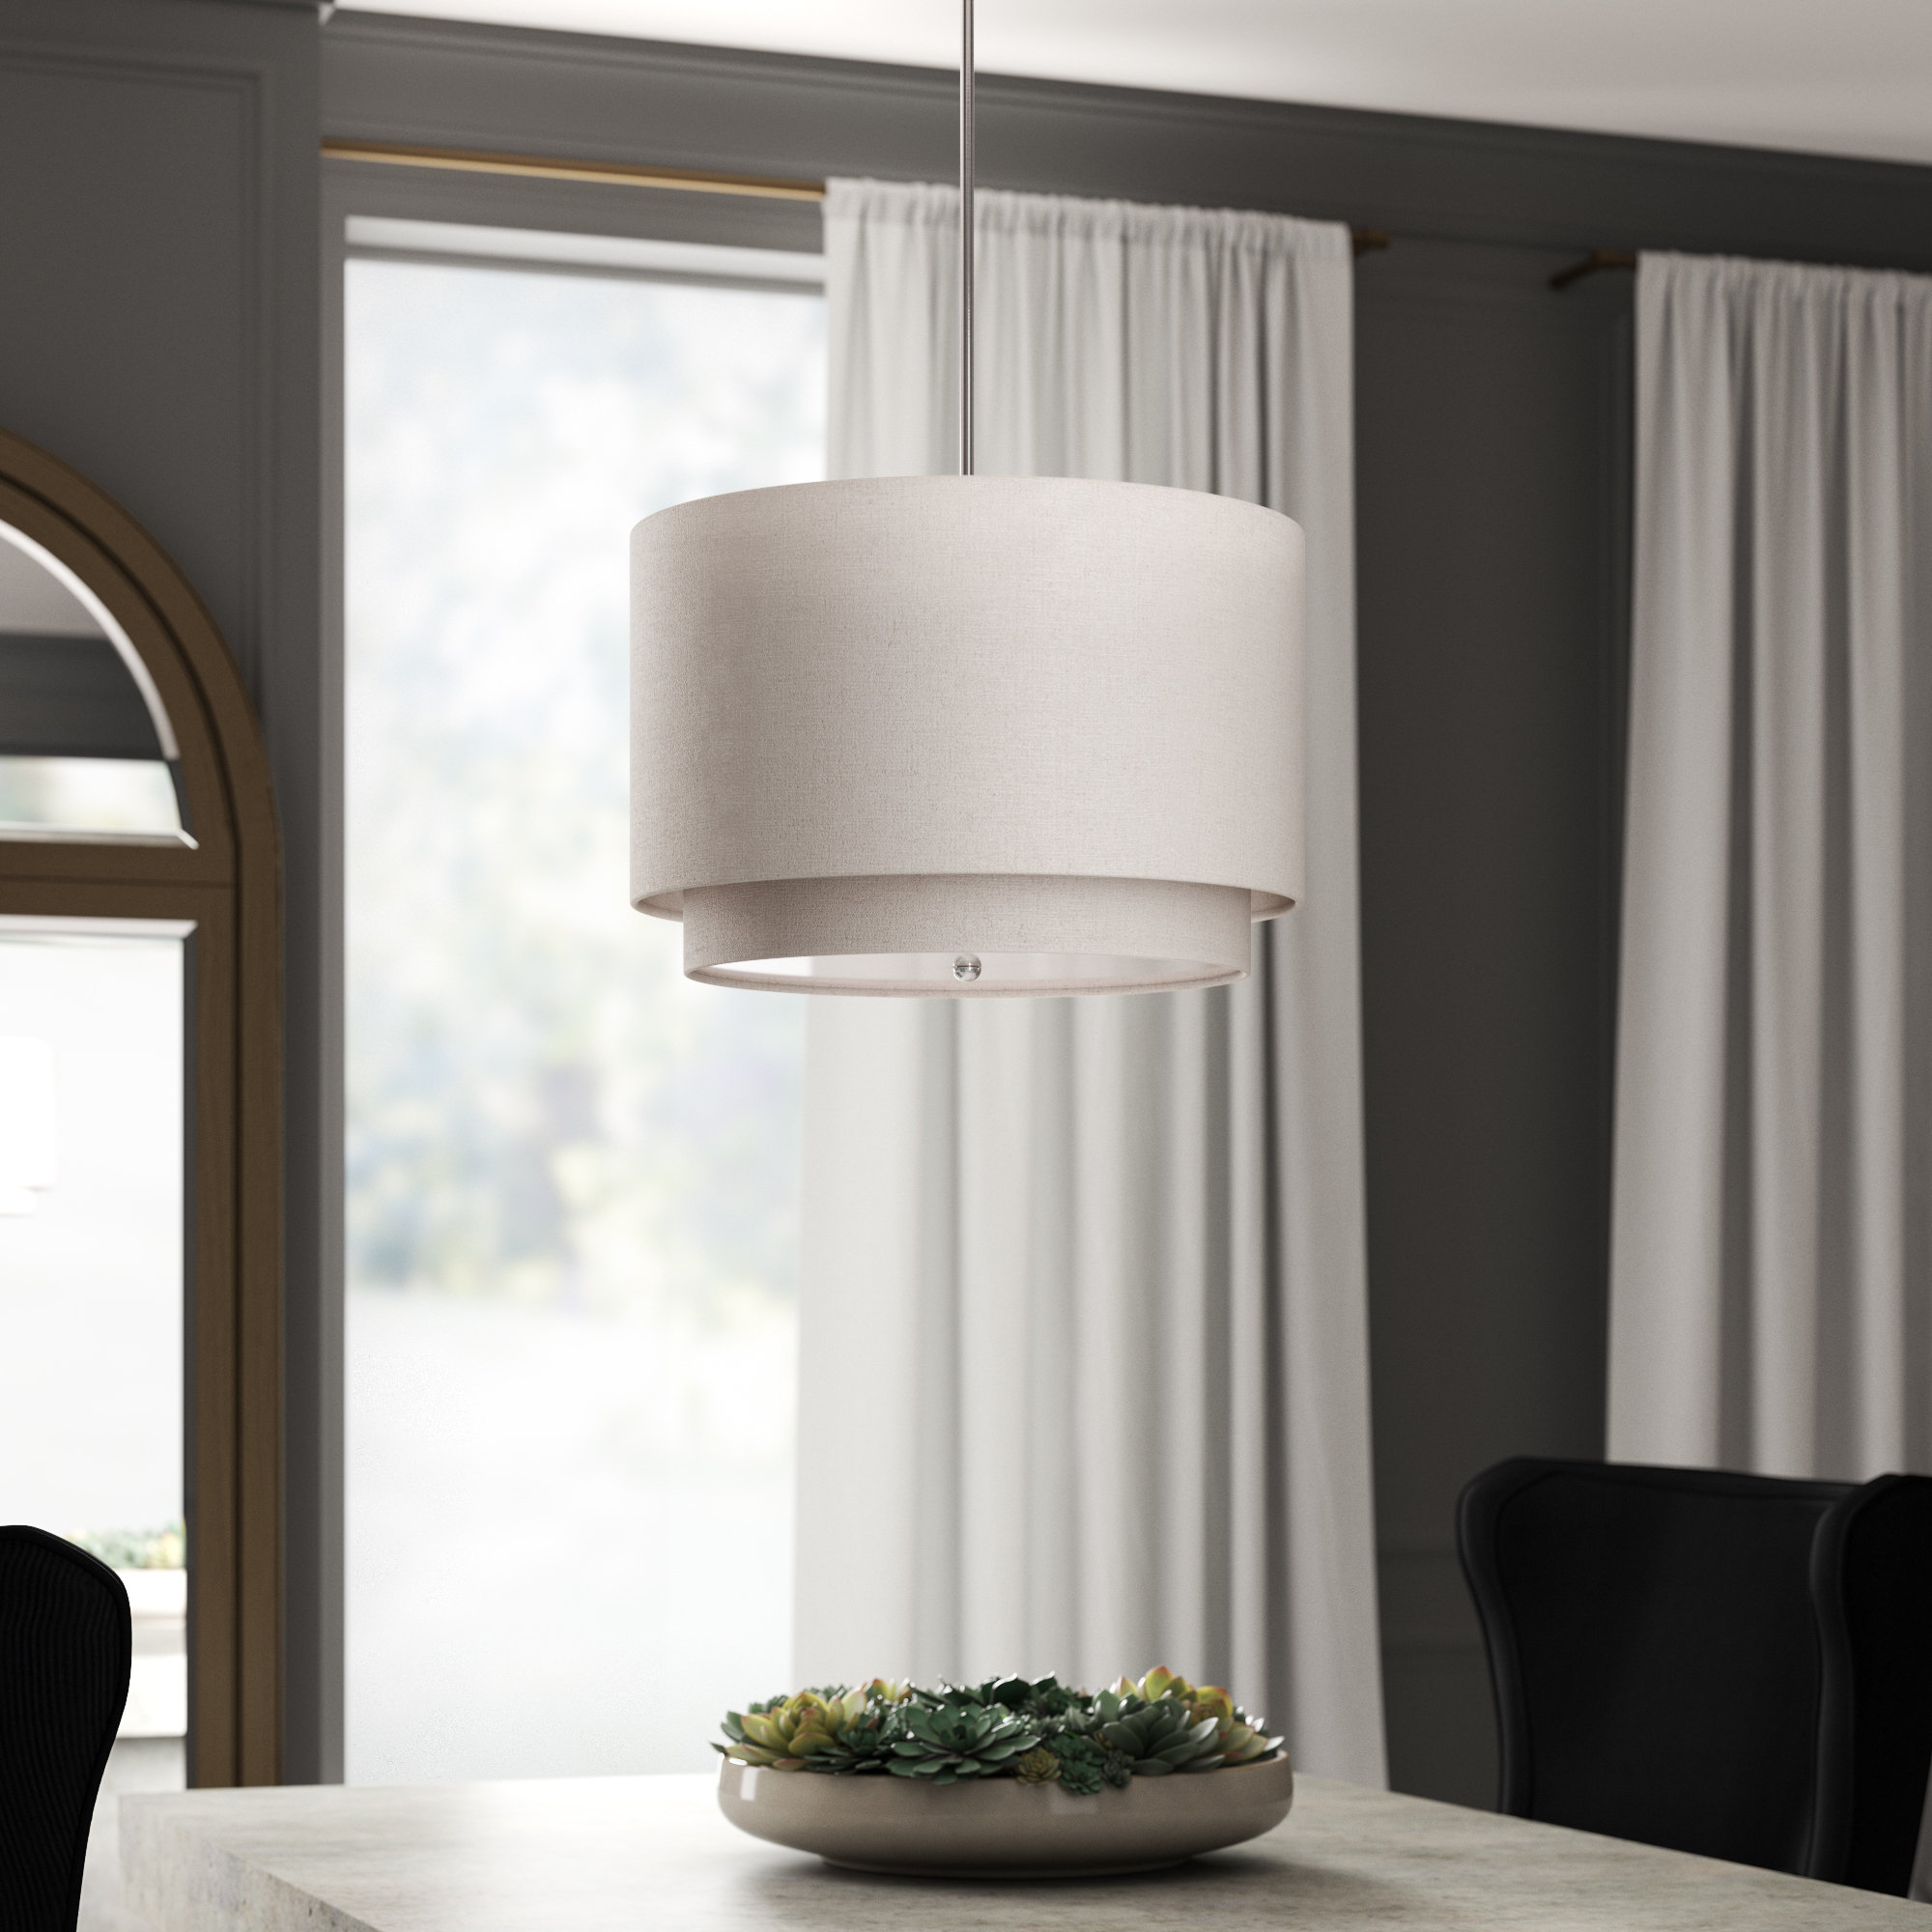 Friedland 3 Light Drum Tiered Pendant With Friedland 3 Light Drum Tiered Pendants (View 2 of 30)